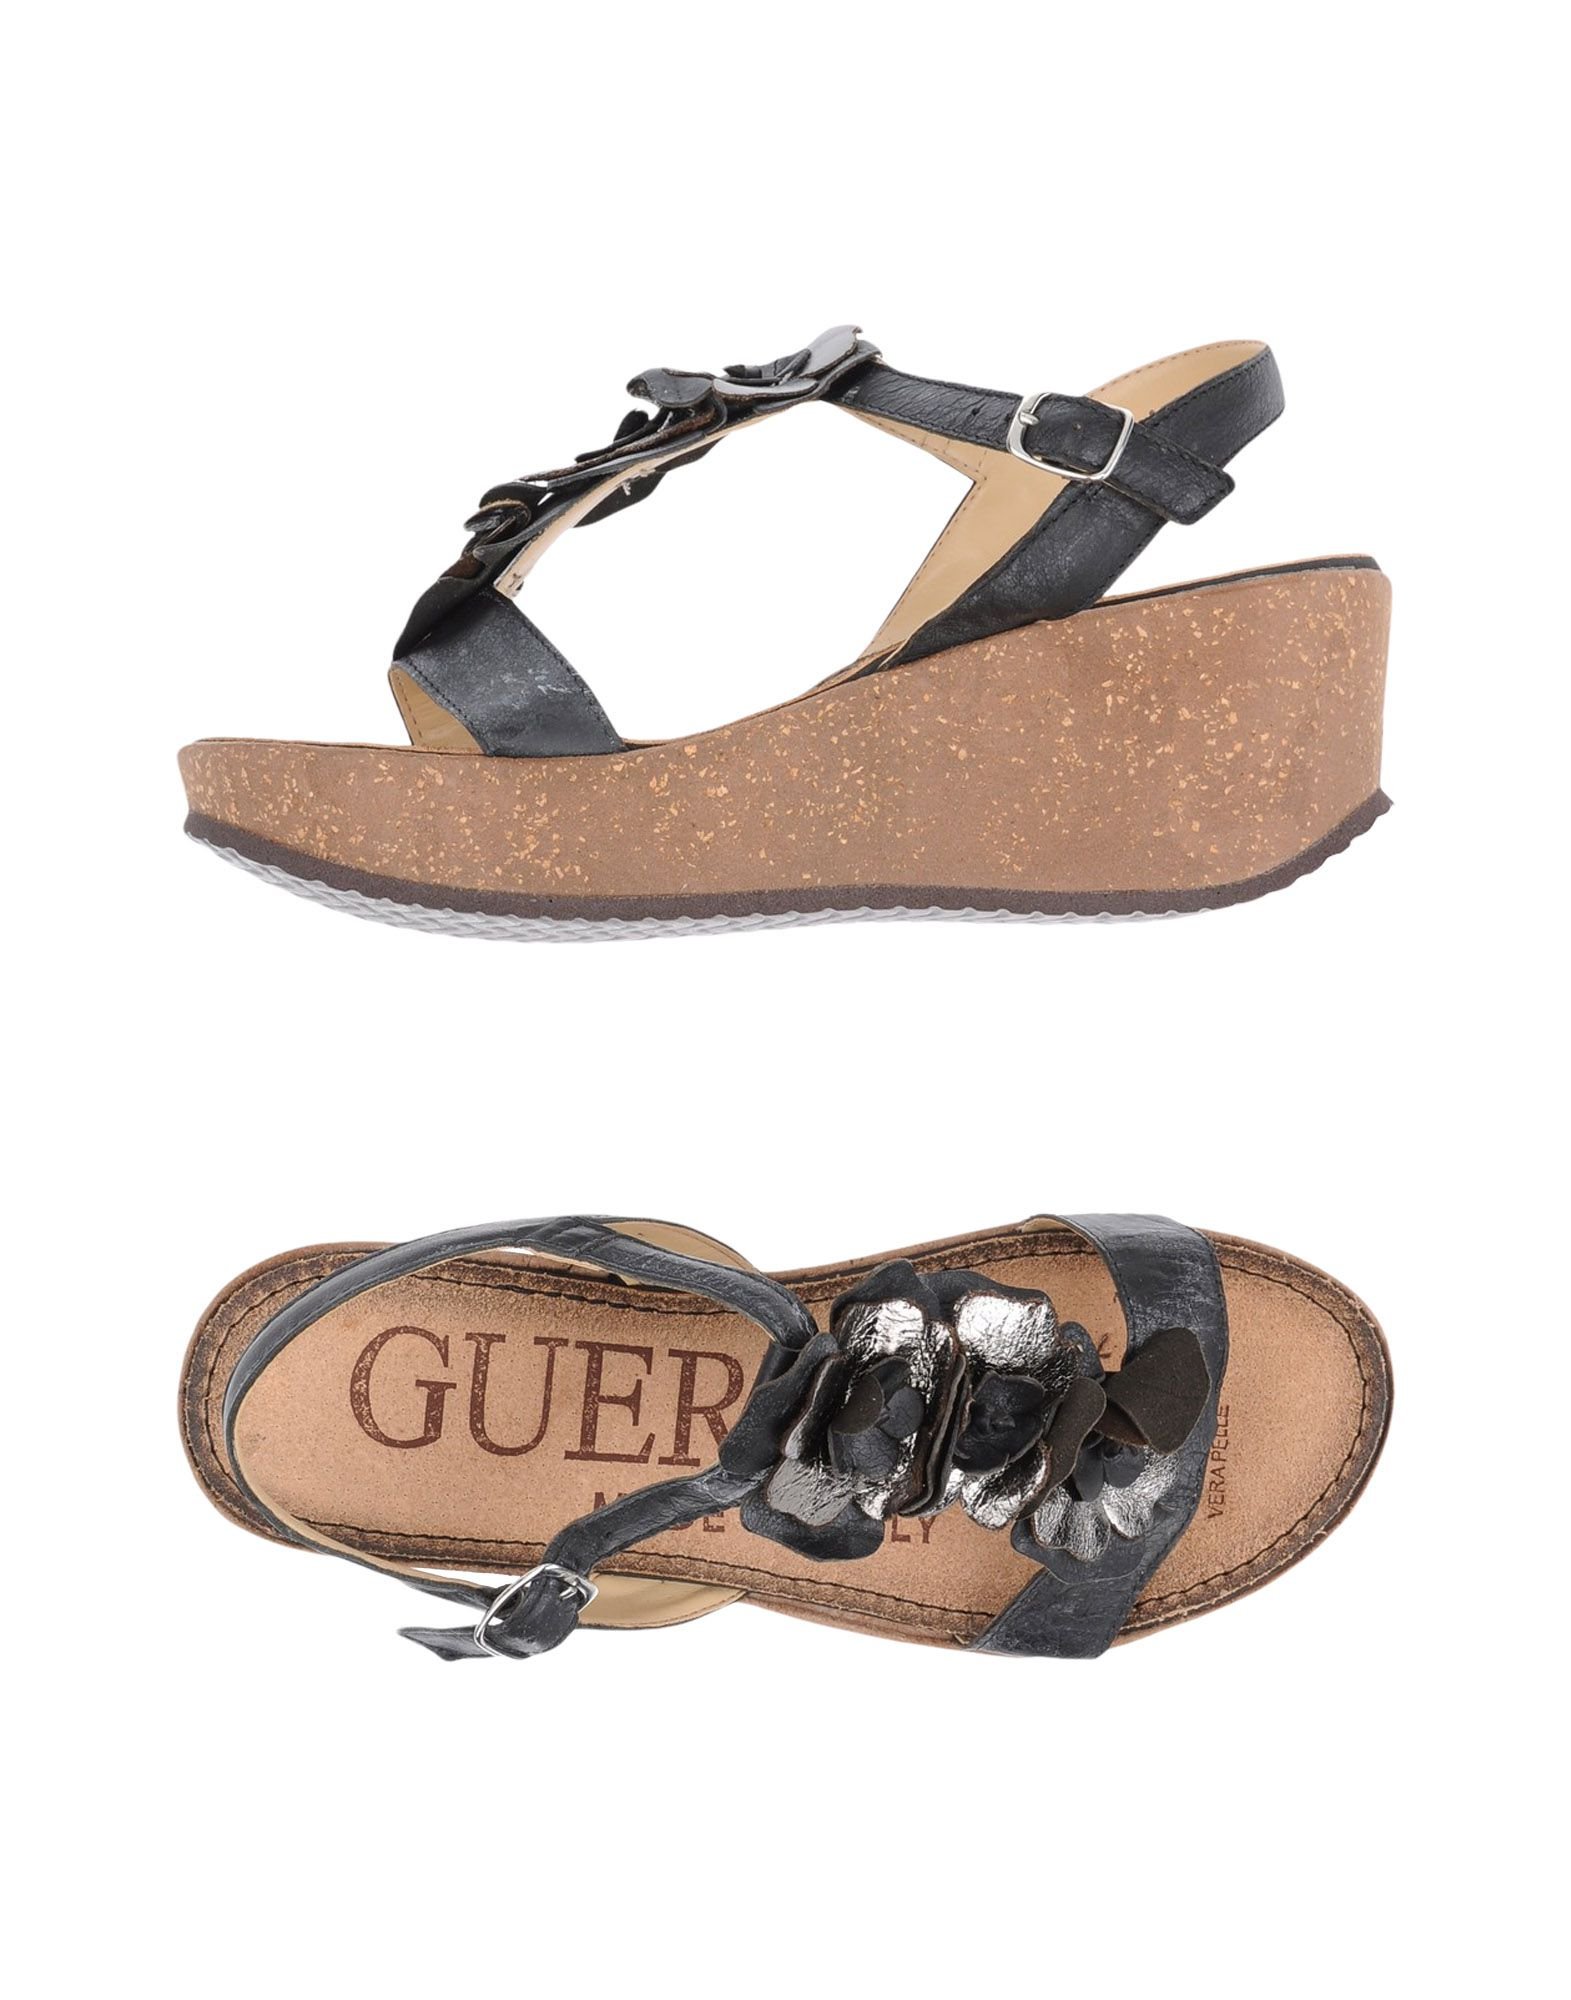 Guerrucci Sandals - Women Women Women Guerrucci Sandals online on  United Kingdom - 11313943EL da3587